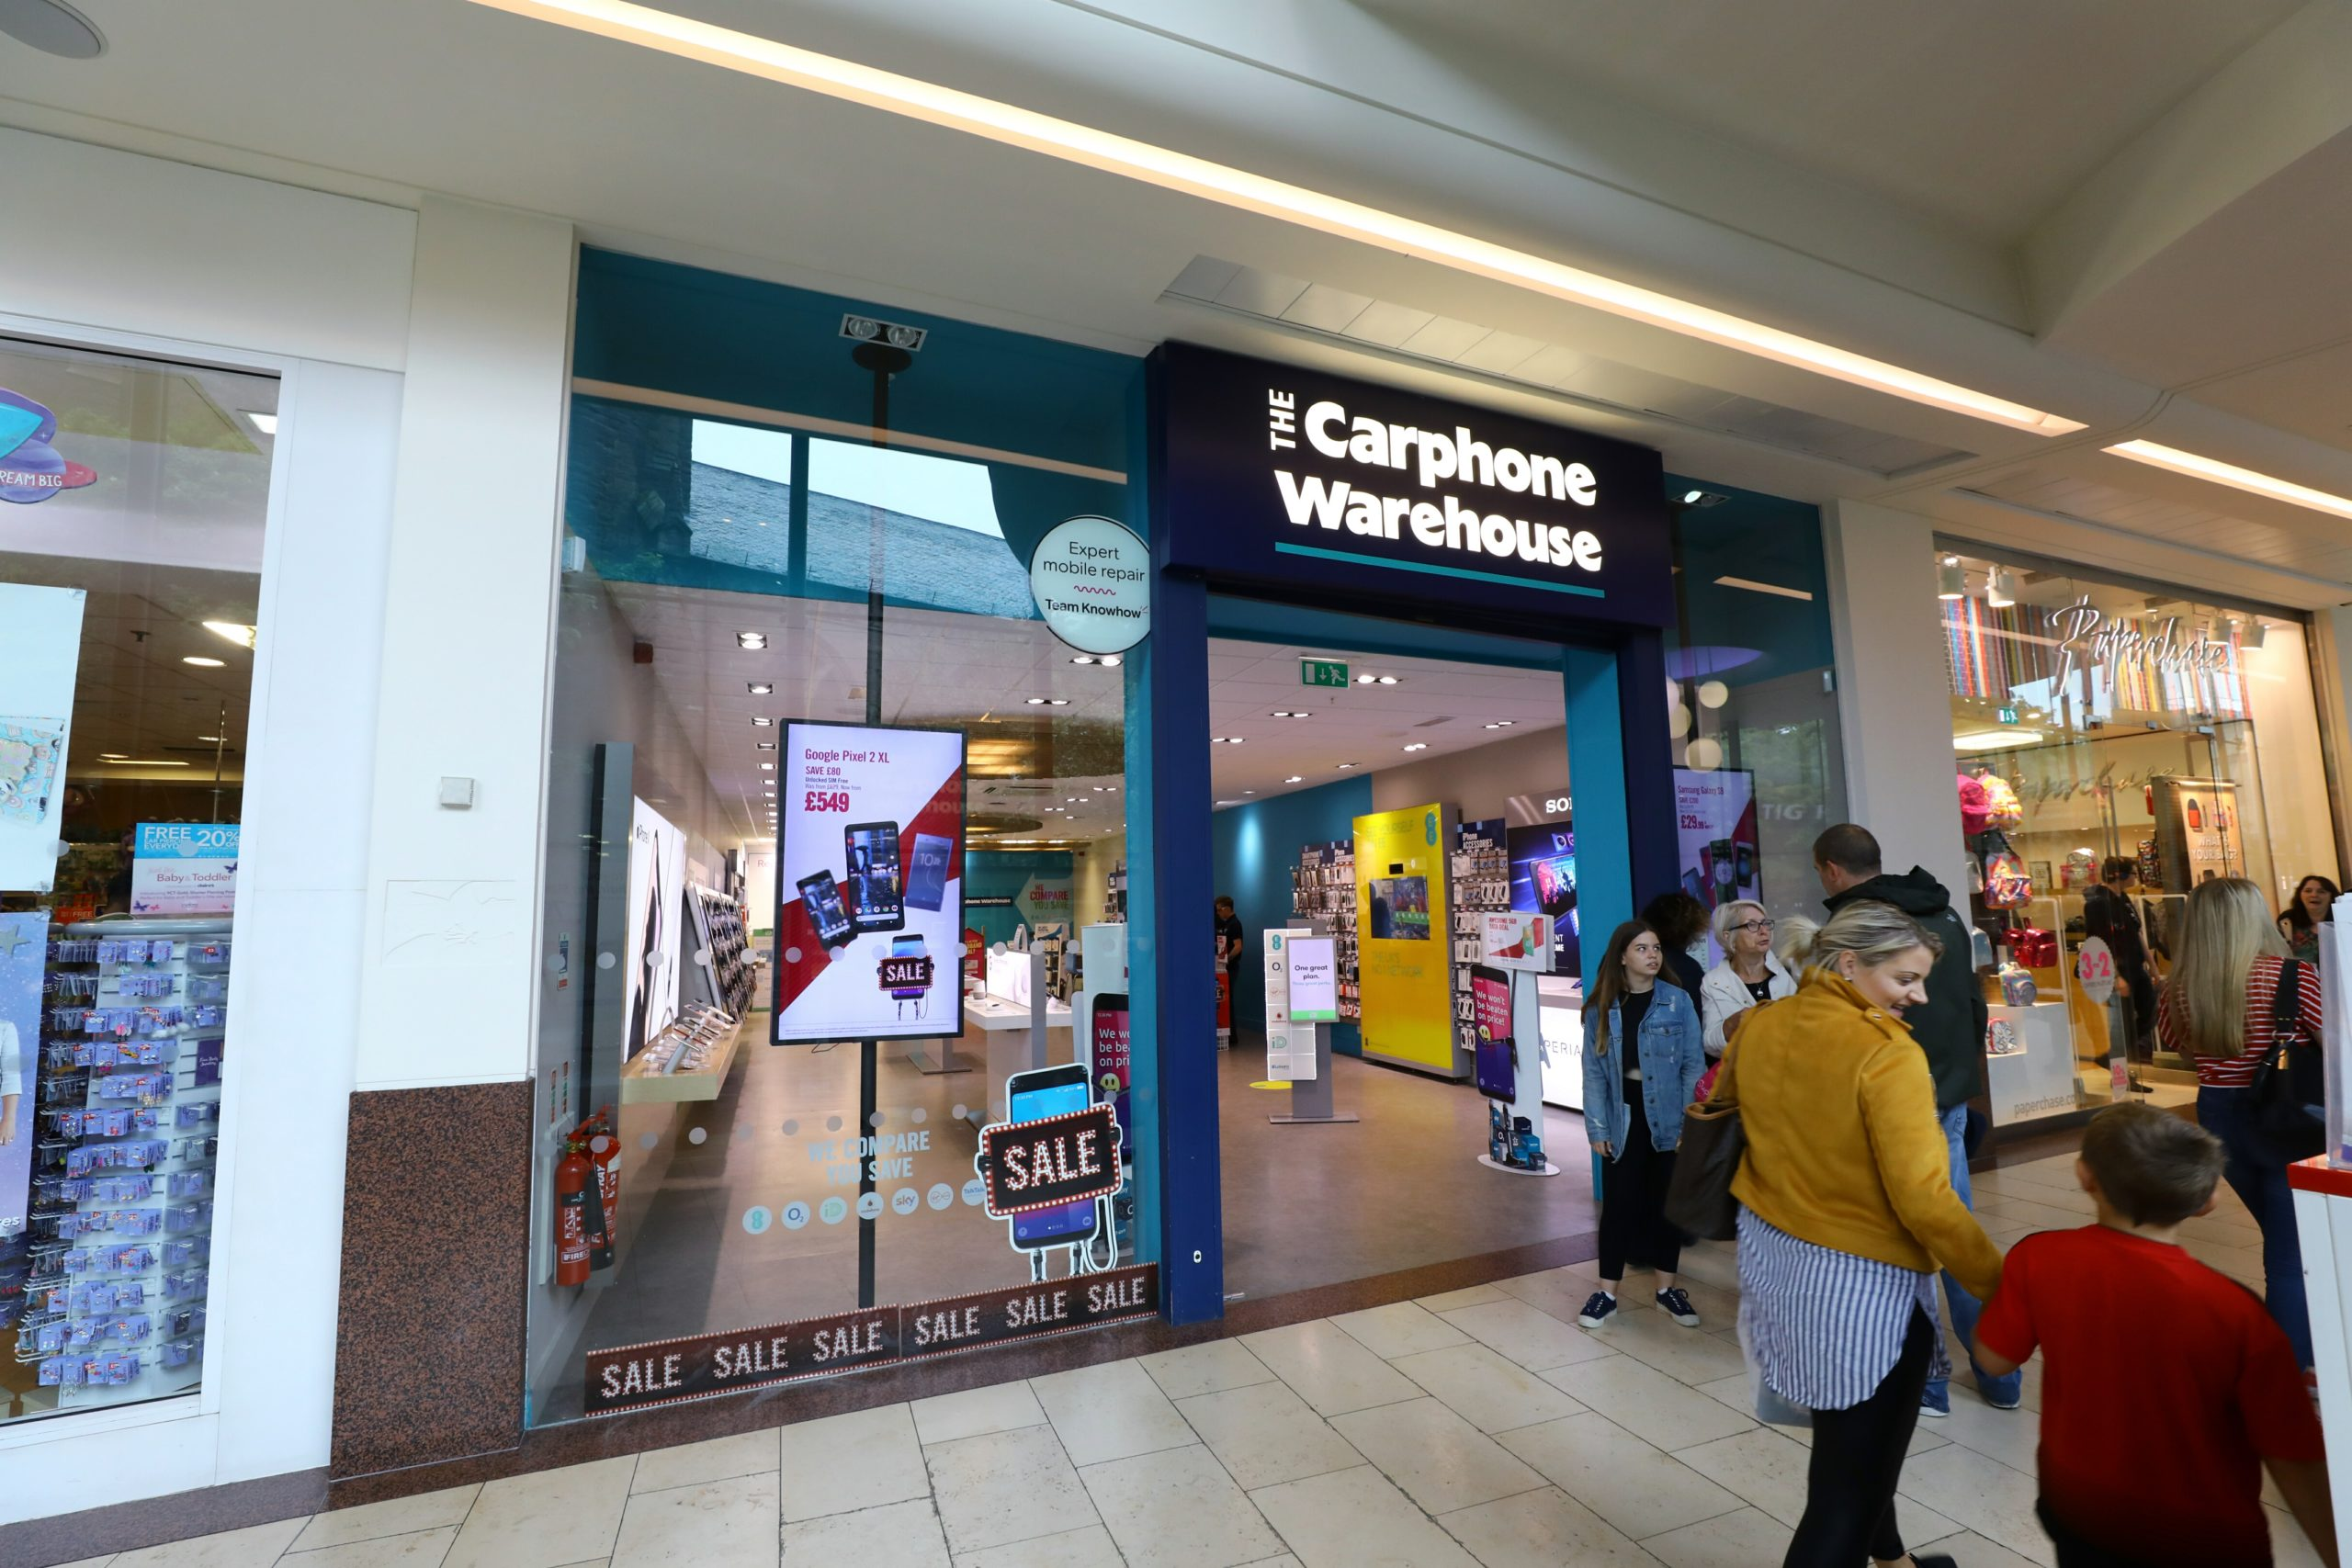 The Carphone Warehouse store in the Overgate Shopping Centre in Dundee.